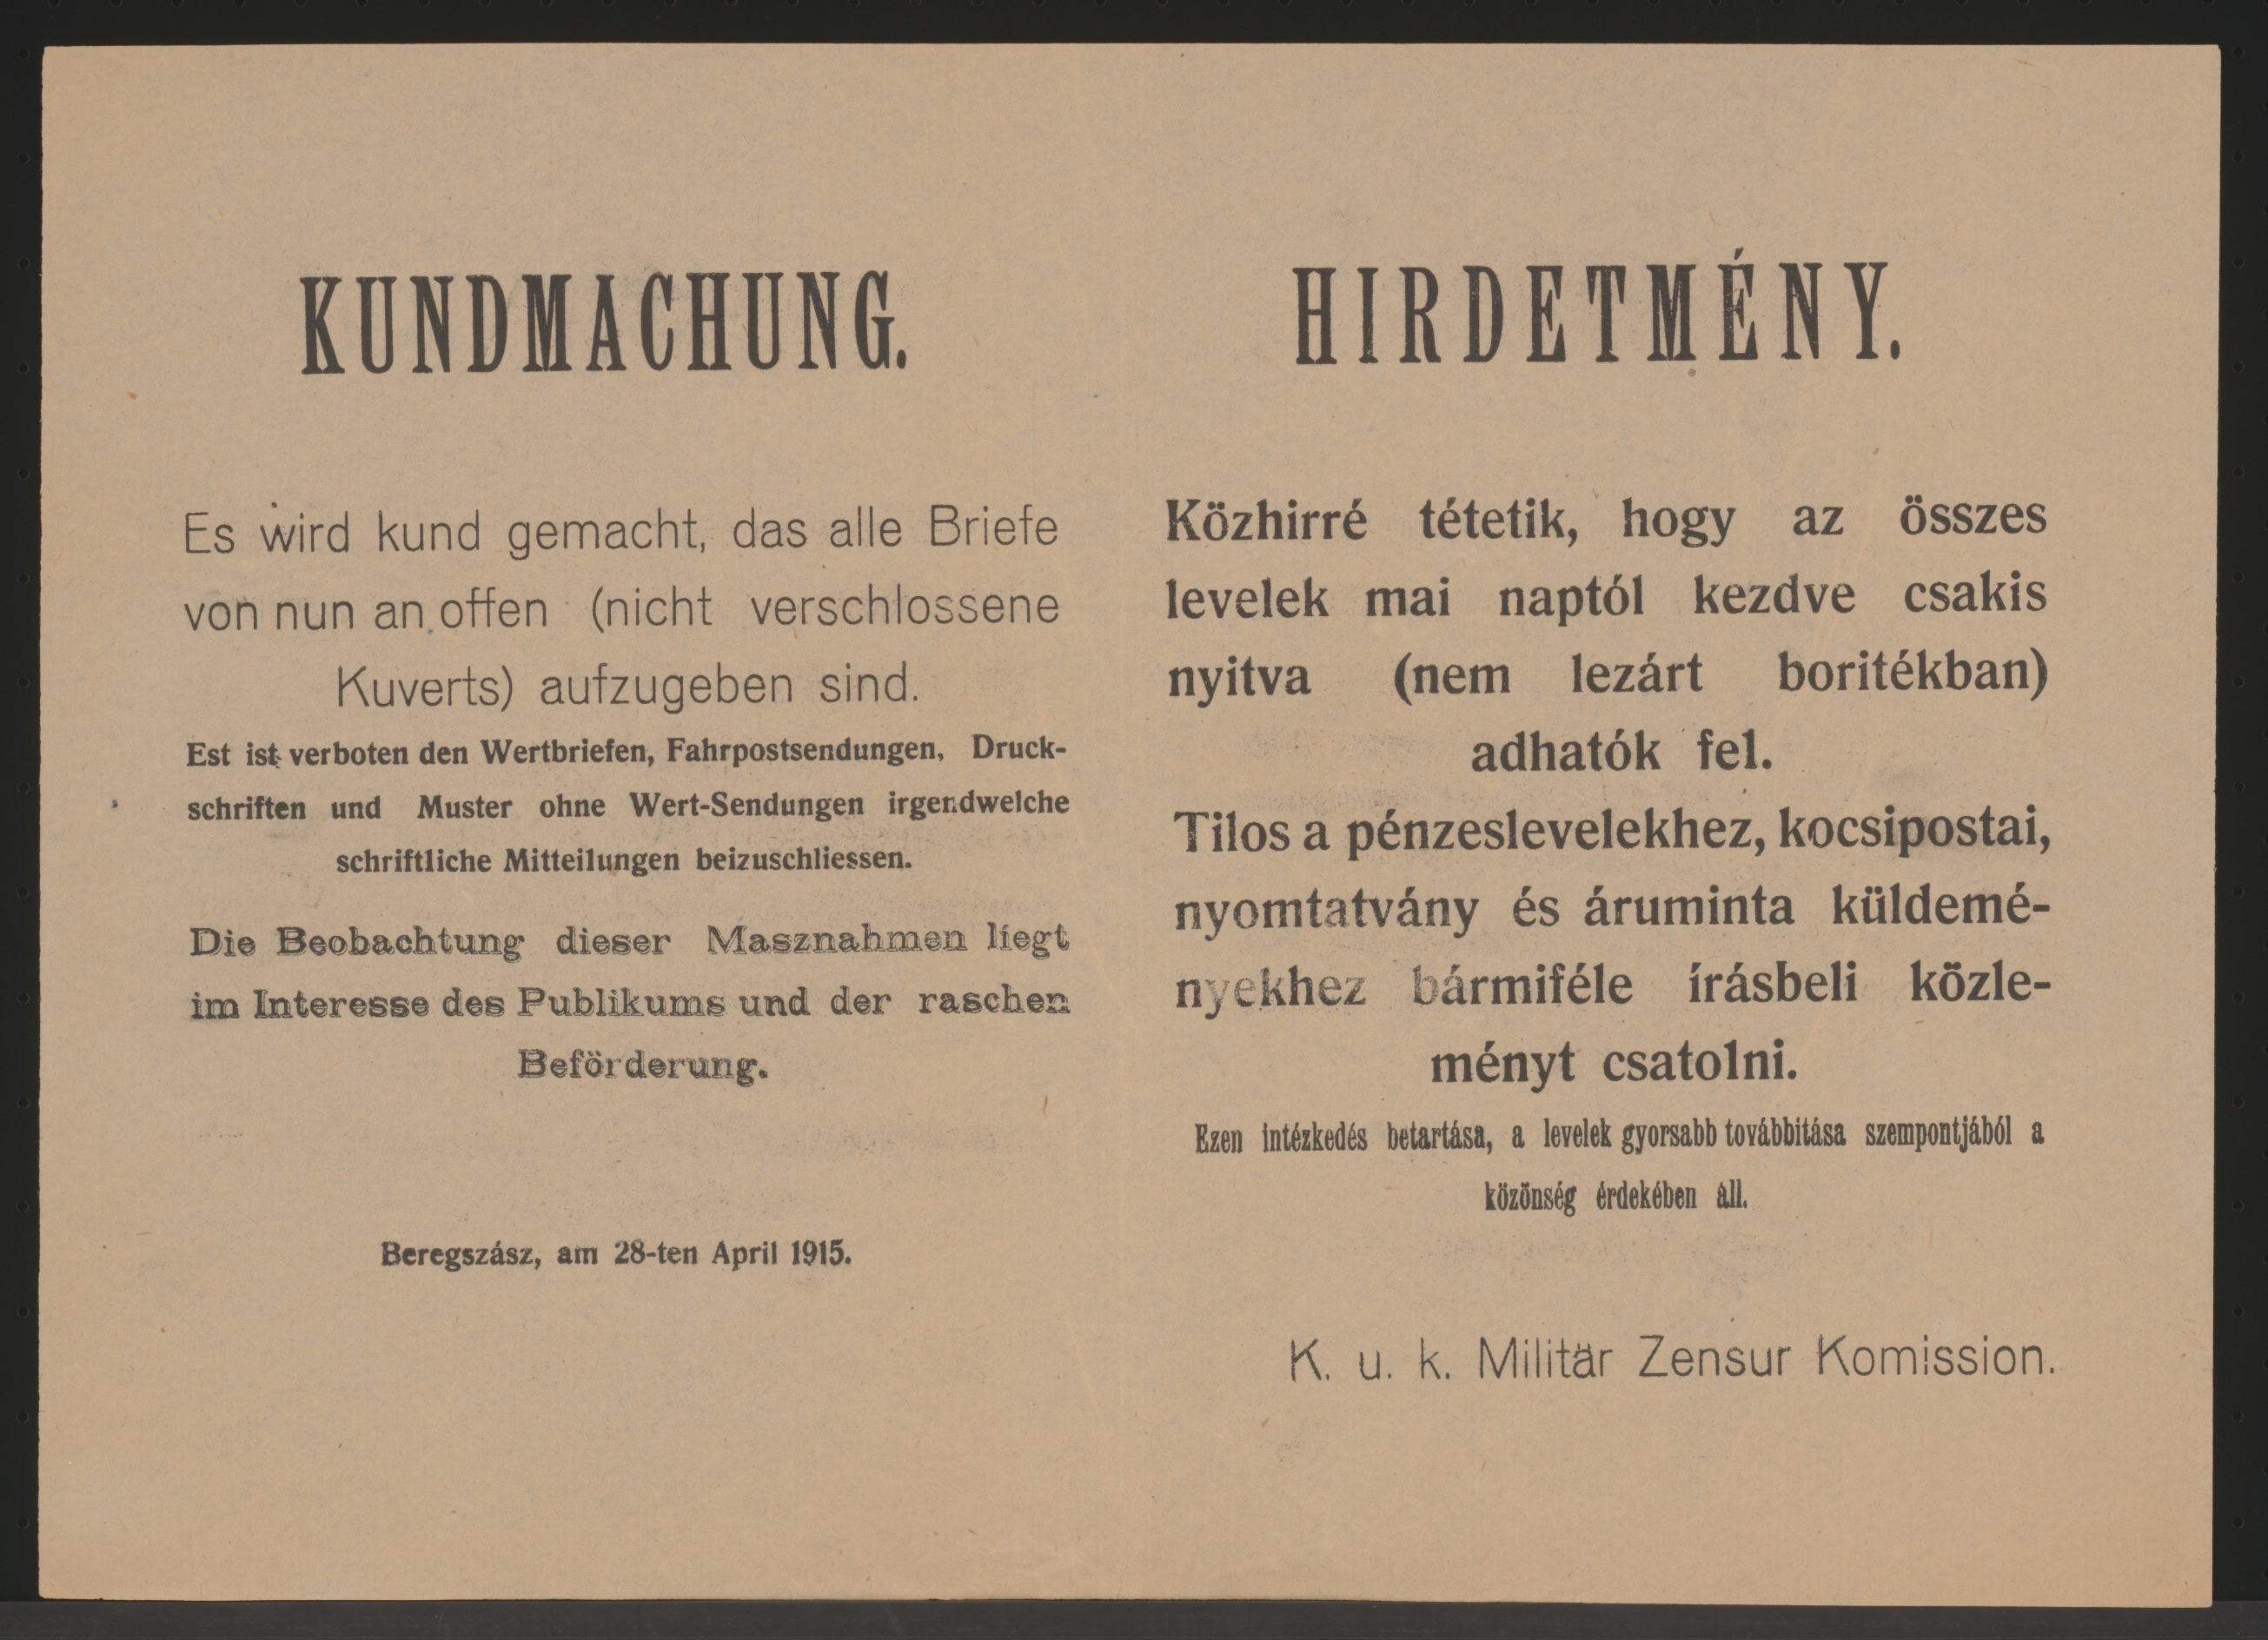 Notice of the Austro-Hungarian Military Censorship (Österreichische Nationalbibliotek)